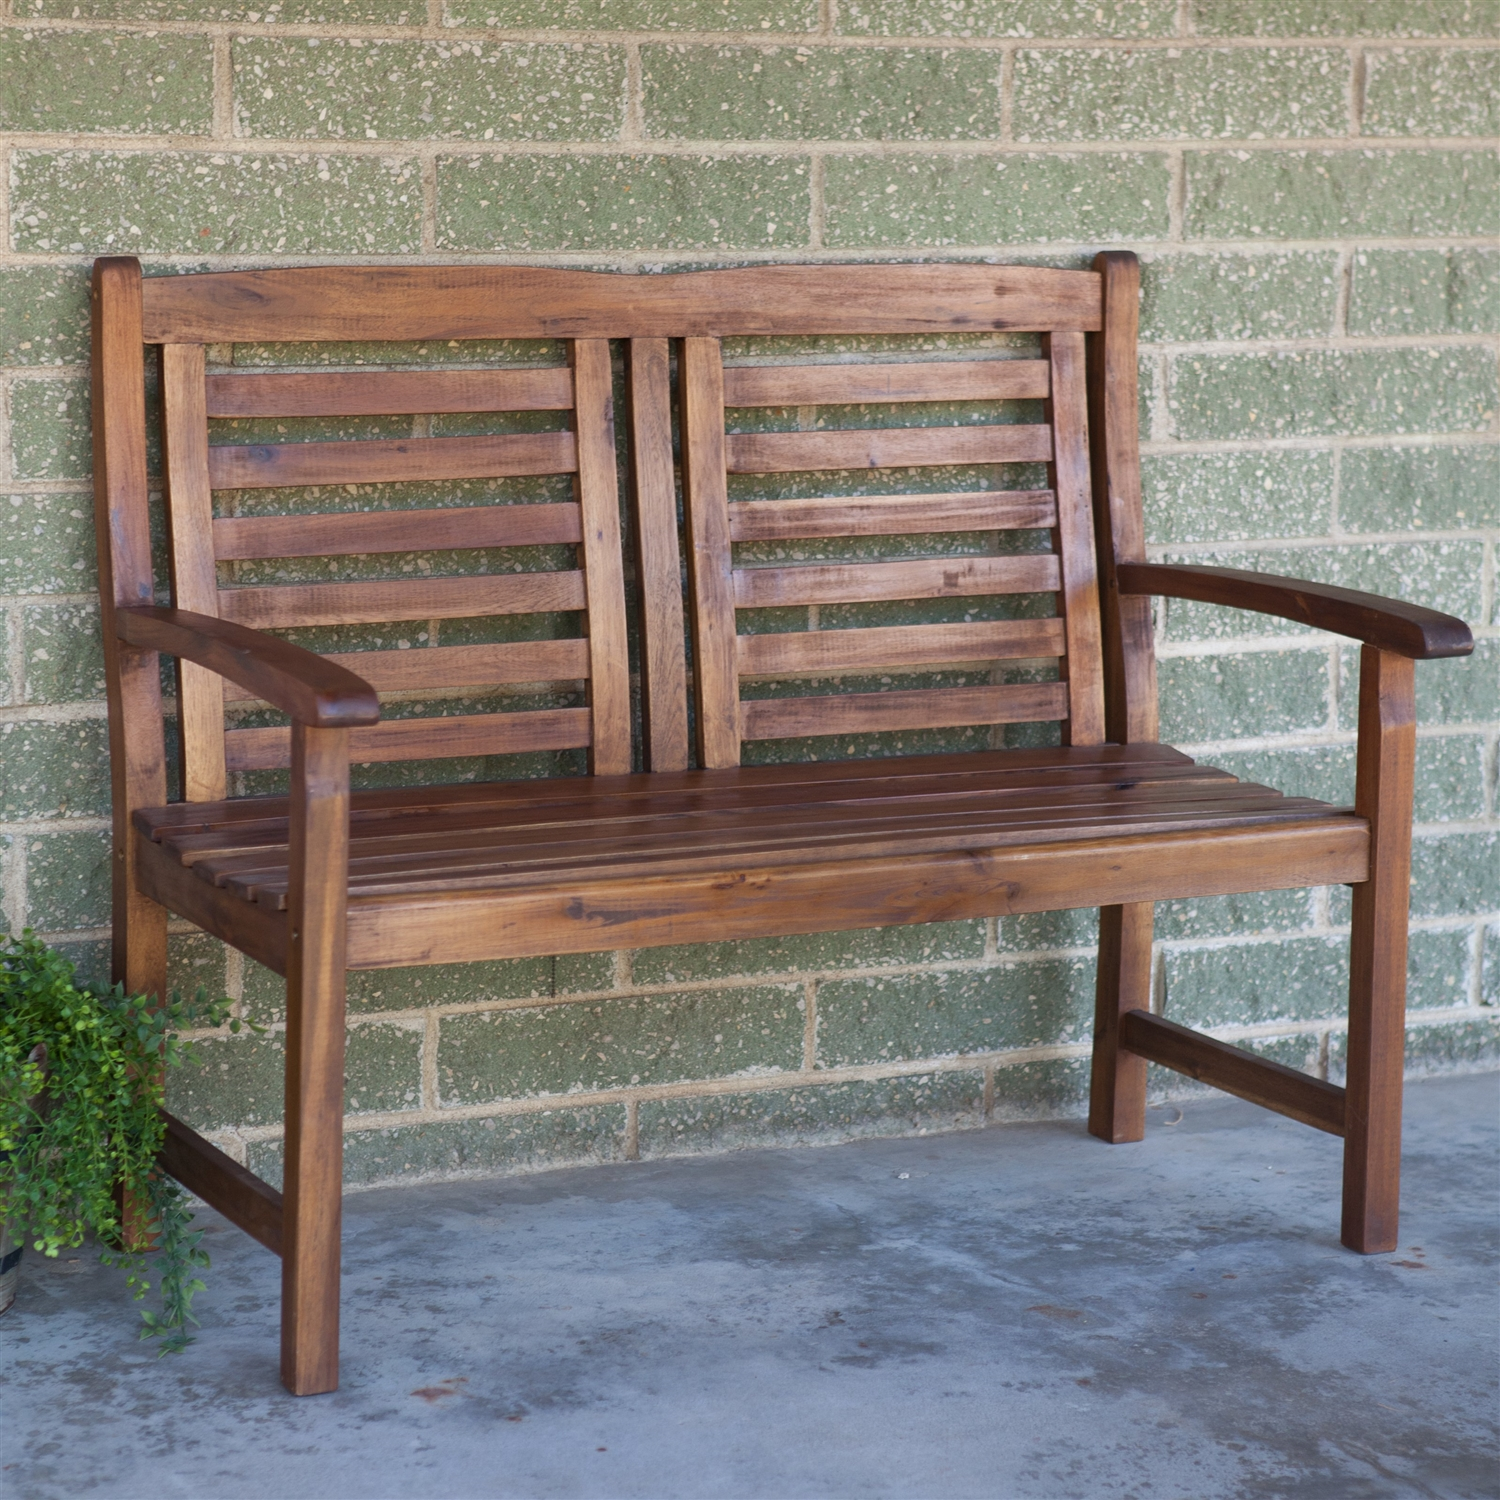 Contemporary outdoor 2 seat garden bench with weather resistant wood finish